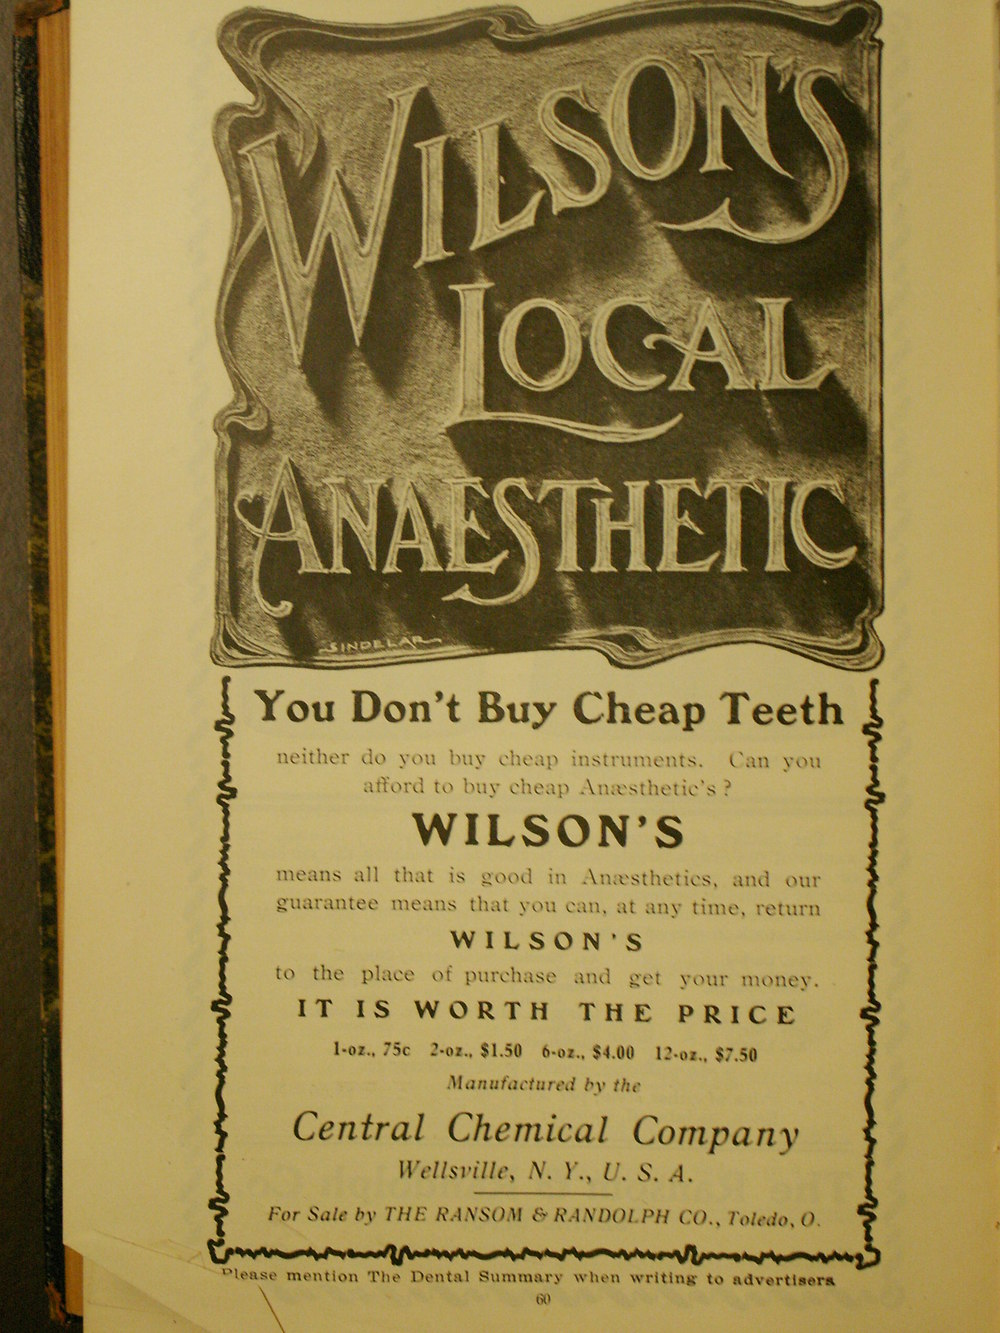 Don't buy cheap teeth…or cheap anaesthetics. rosefirerising/Flickr (CC BY-NC-ND 2.0)